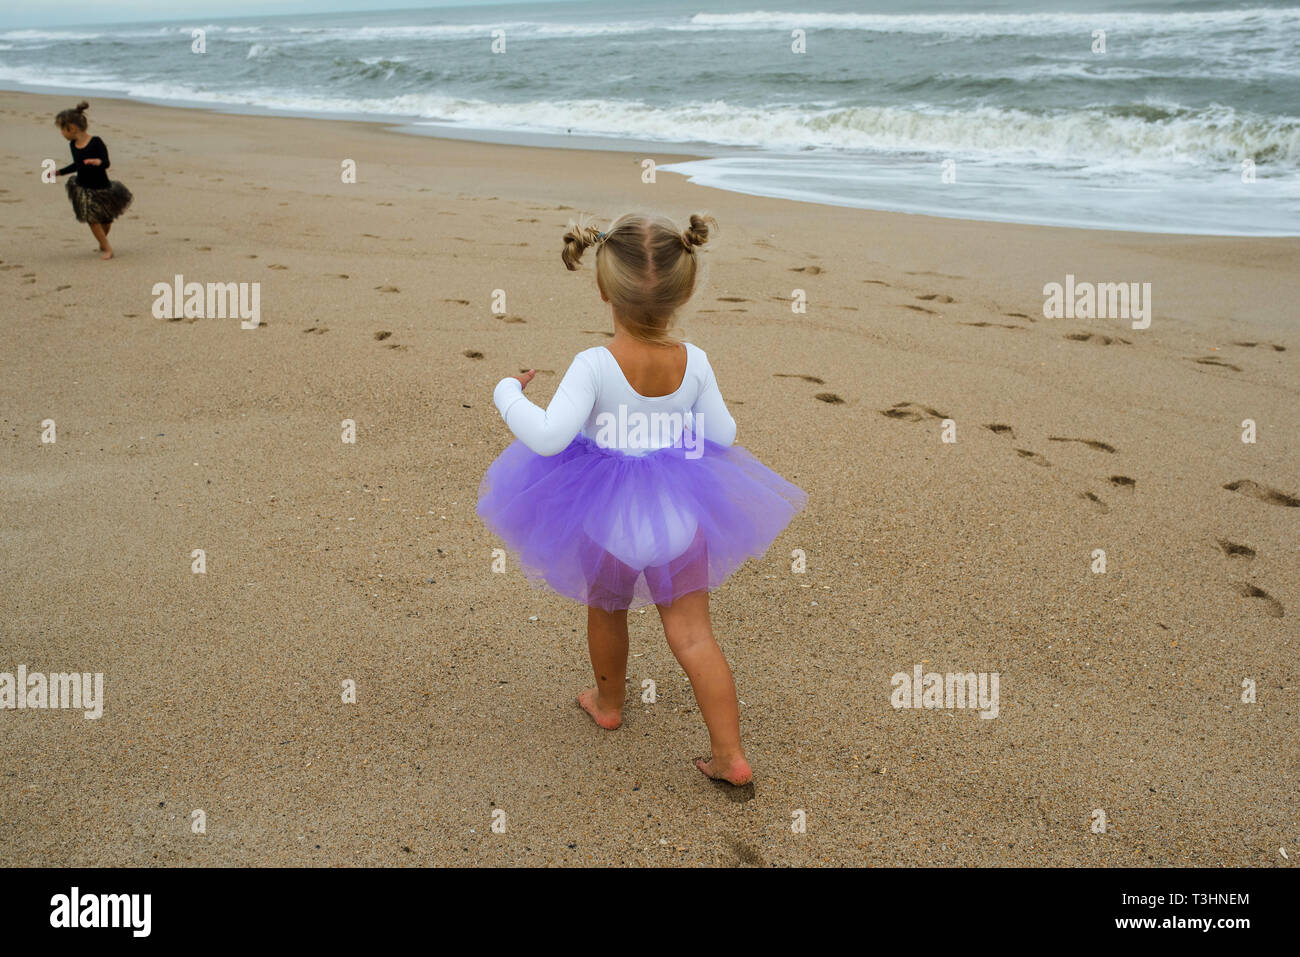 Two little girls running on the beach - Stock Image